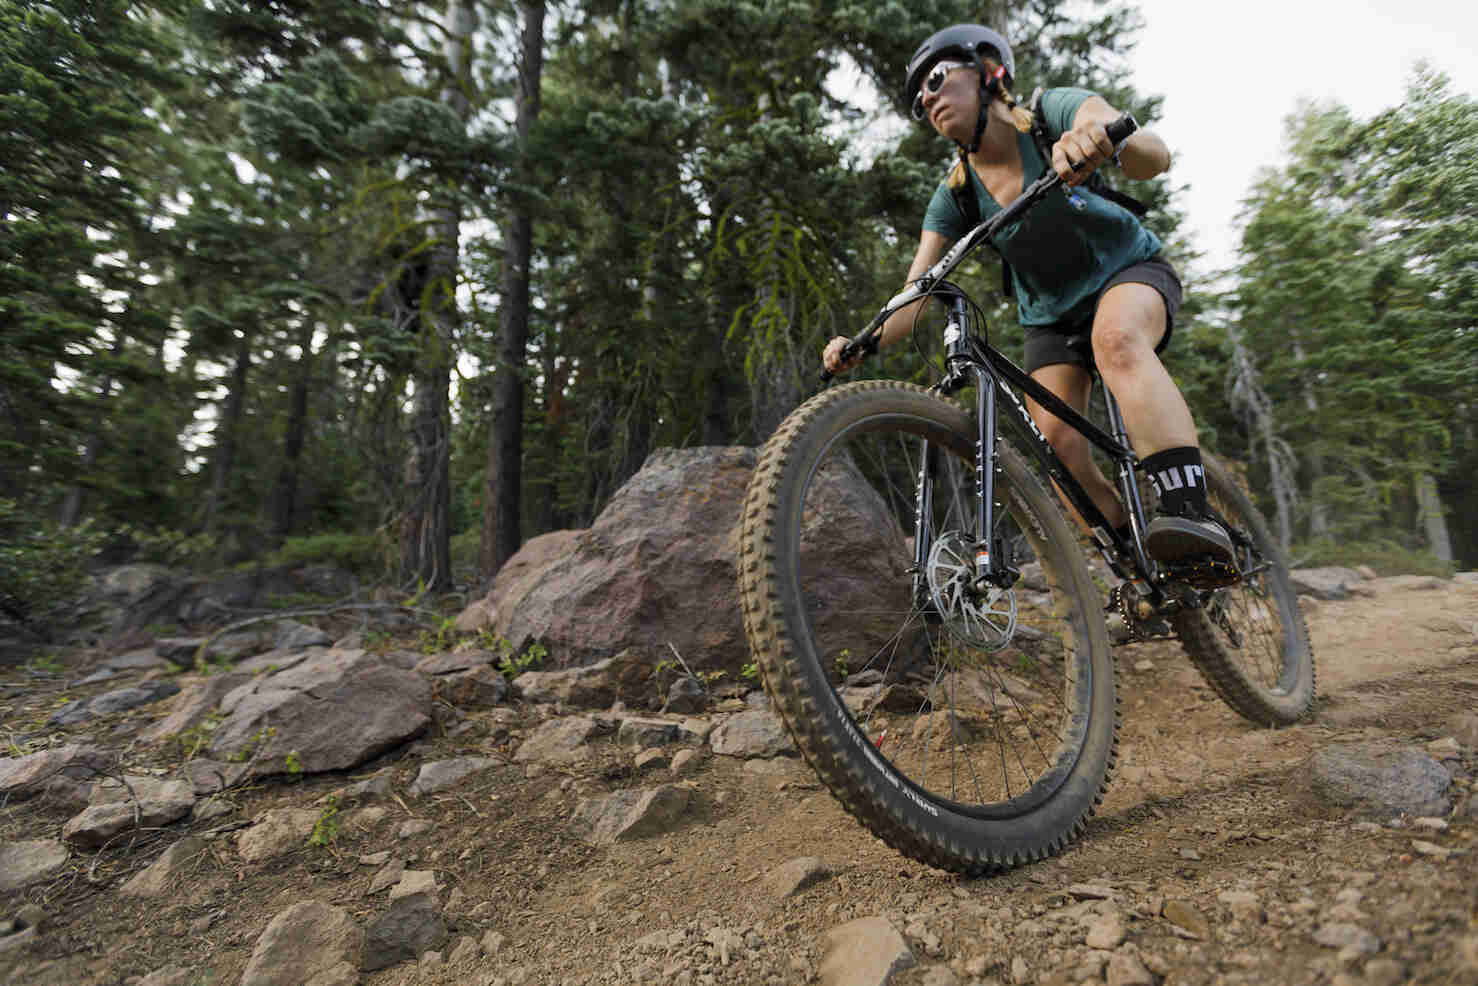 Front left view of a cyclist on a Surly Karate Monkey bike, black, riding down a rocky dirt trail in the forest